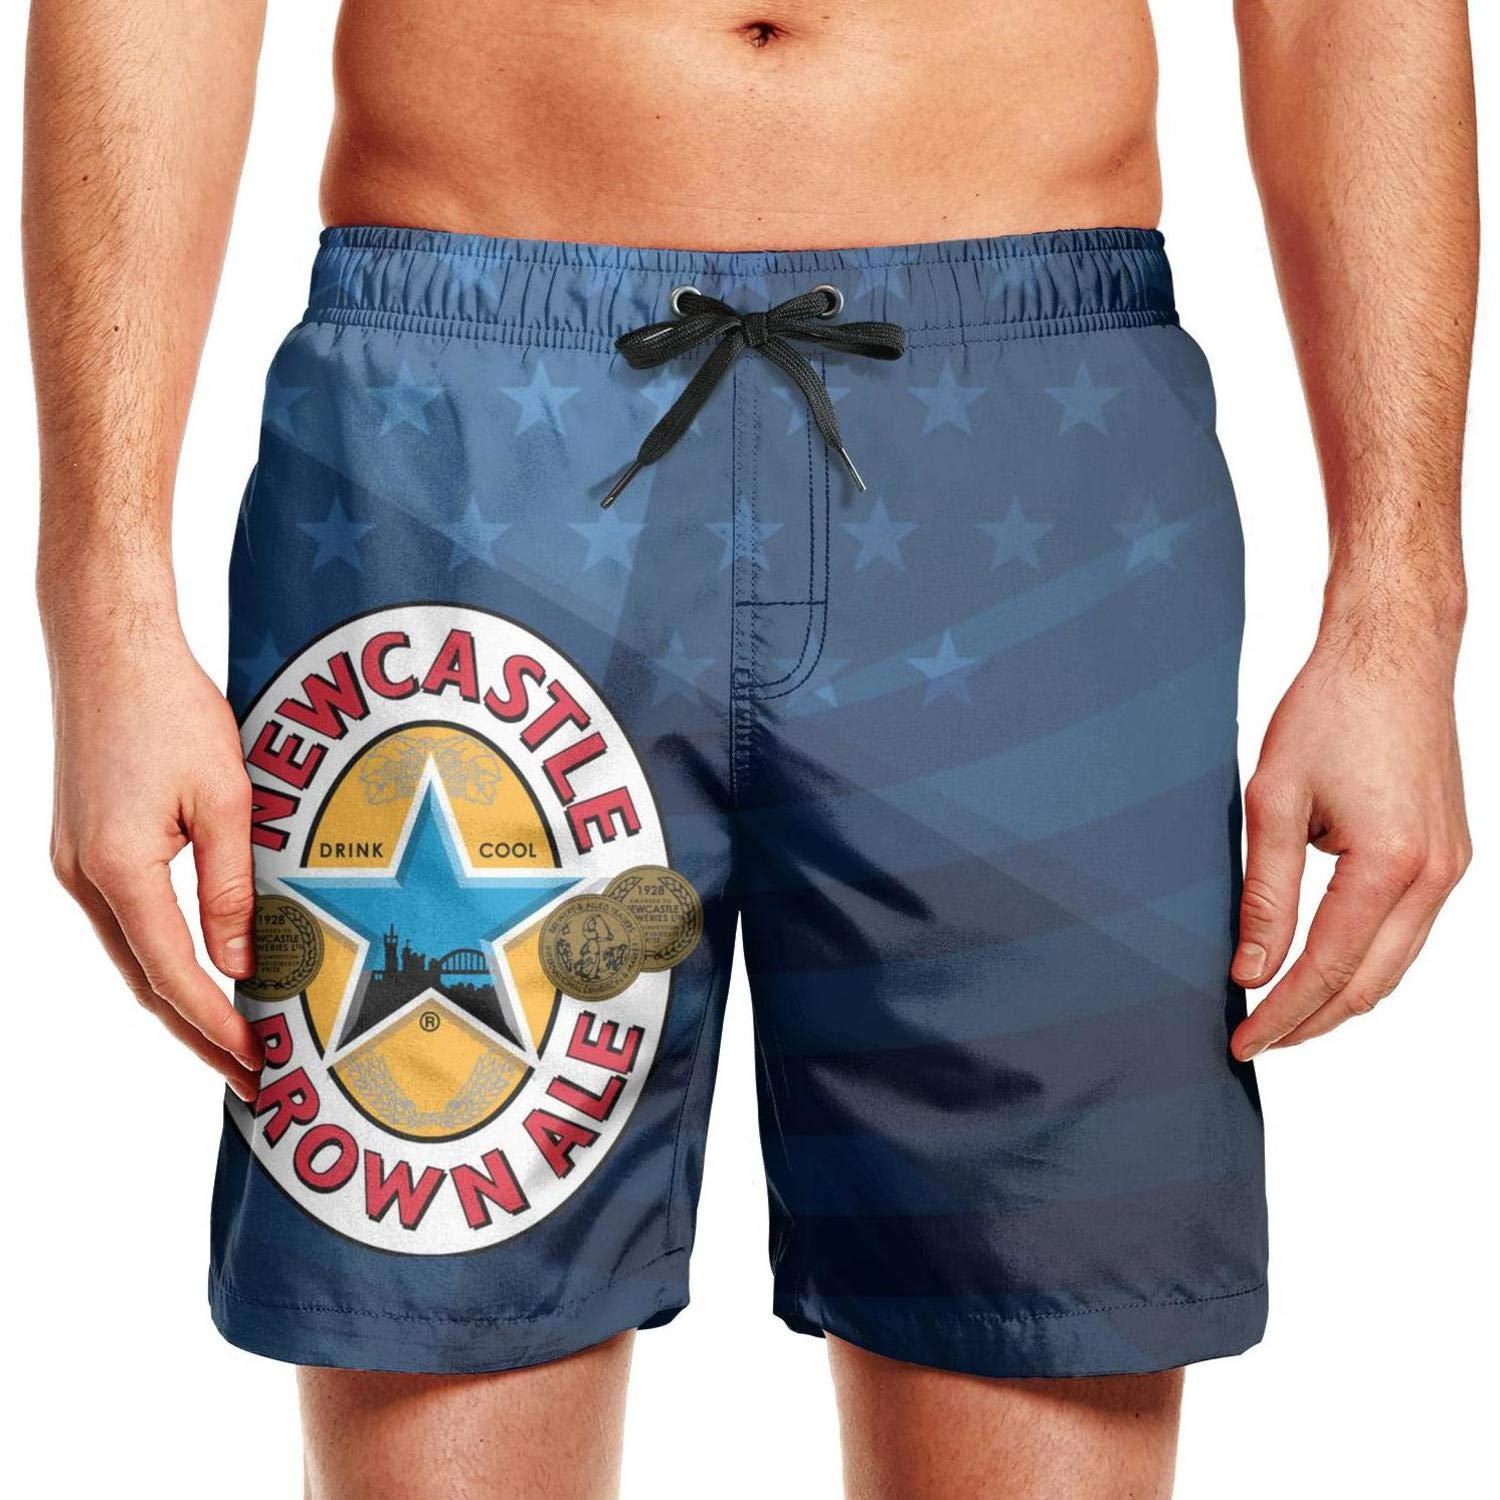 Newcastle Brown Ale Patriotic American Usa Flag July 4th Shorts